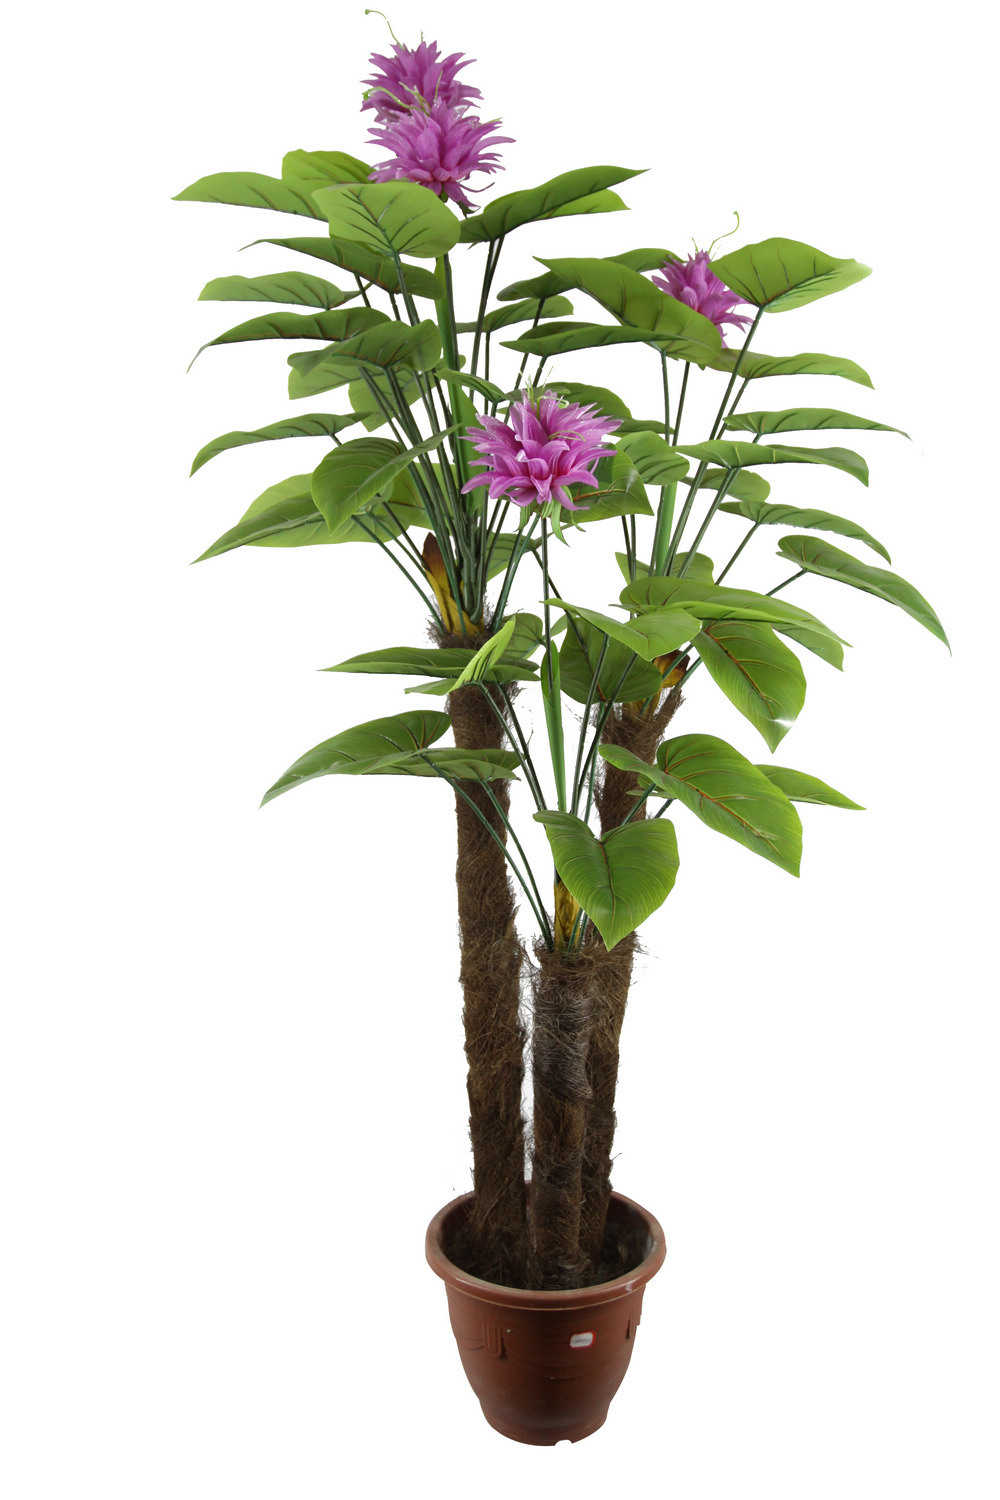 China art capucine plant imitated potted flower jtla 0011 for Plante verte decorative